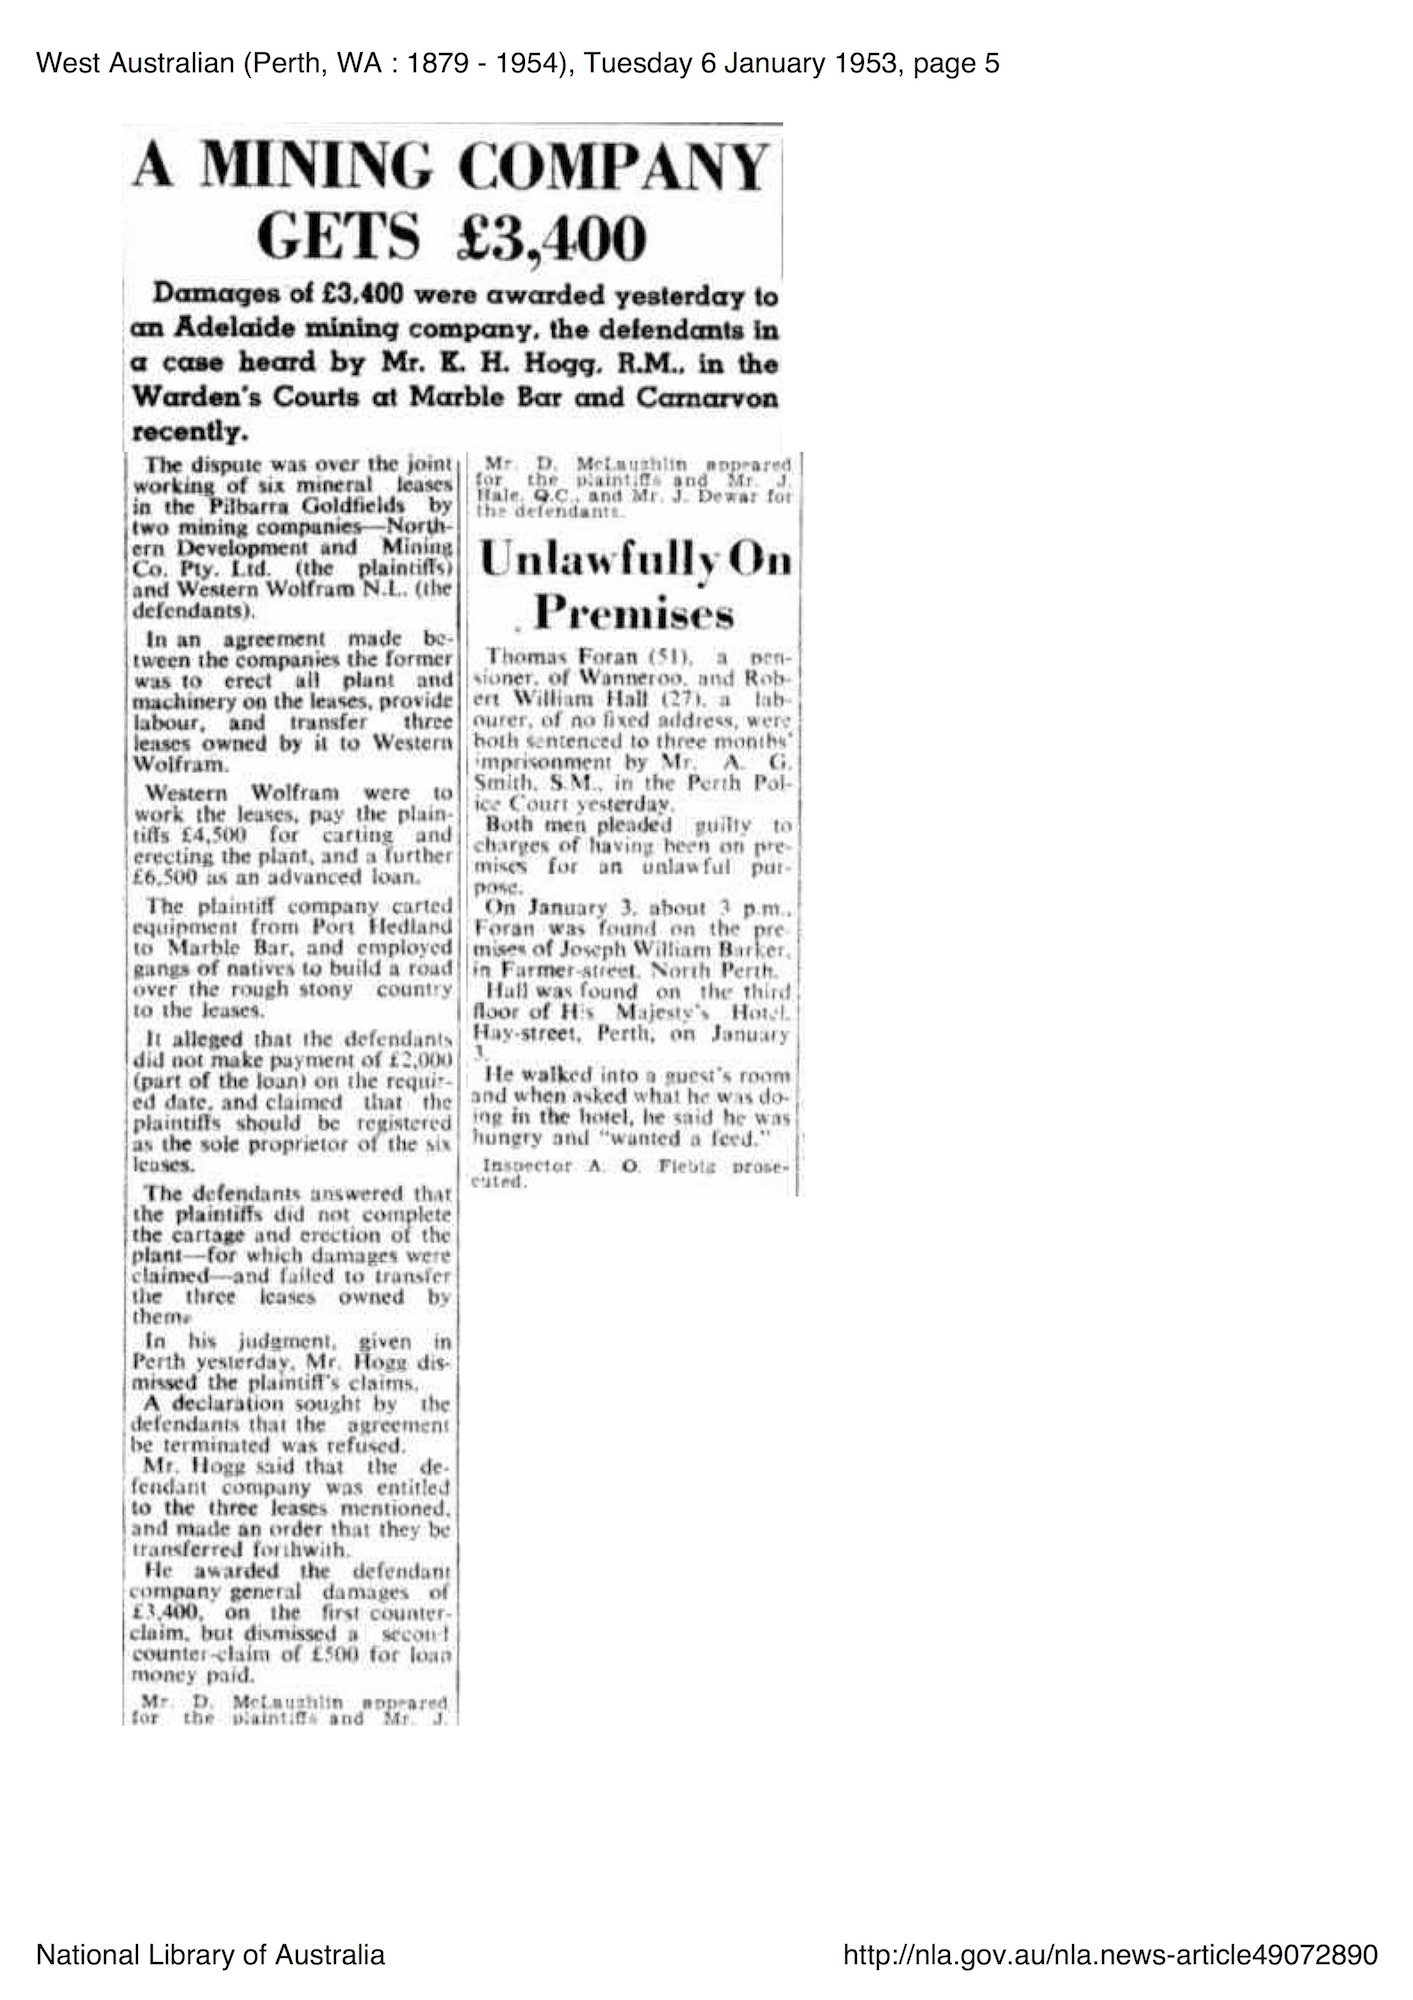 West Australian, 6 January 1953, p. 5, 'A Mining Company Gets £3,400'